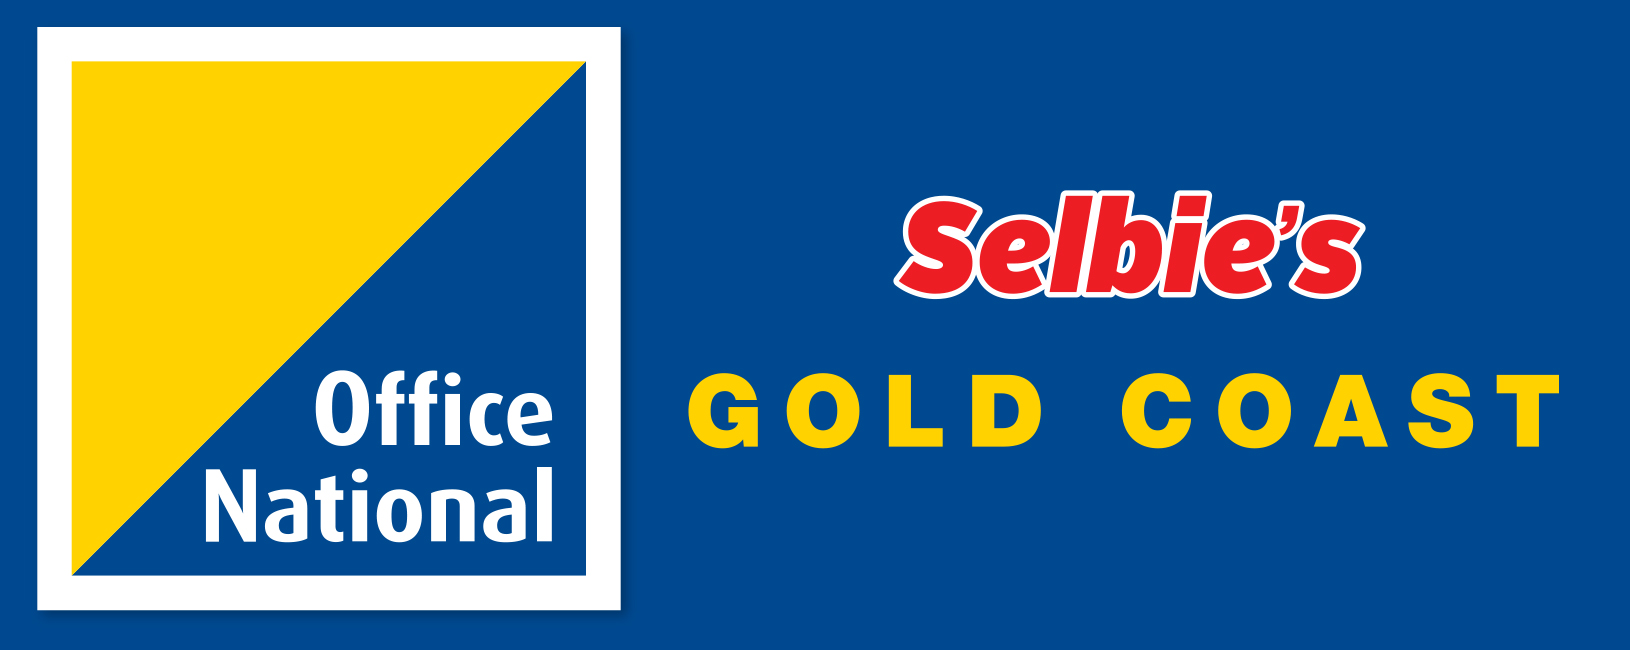 Selbies Gold Coast Office National